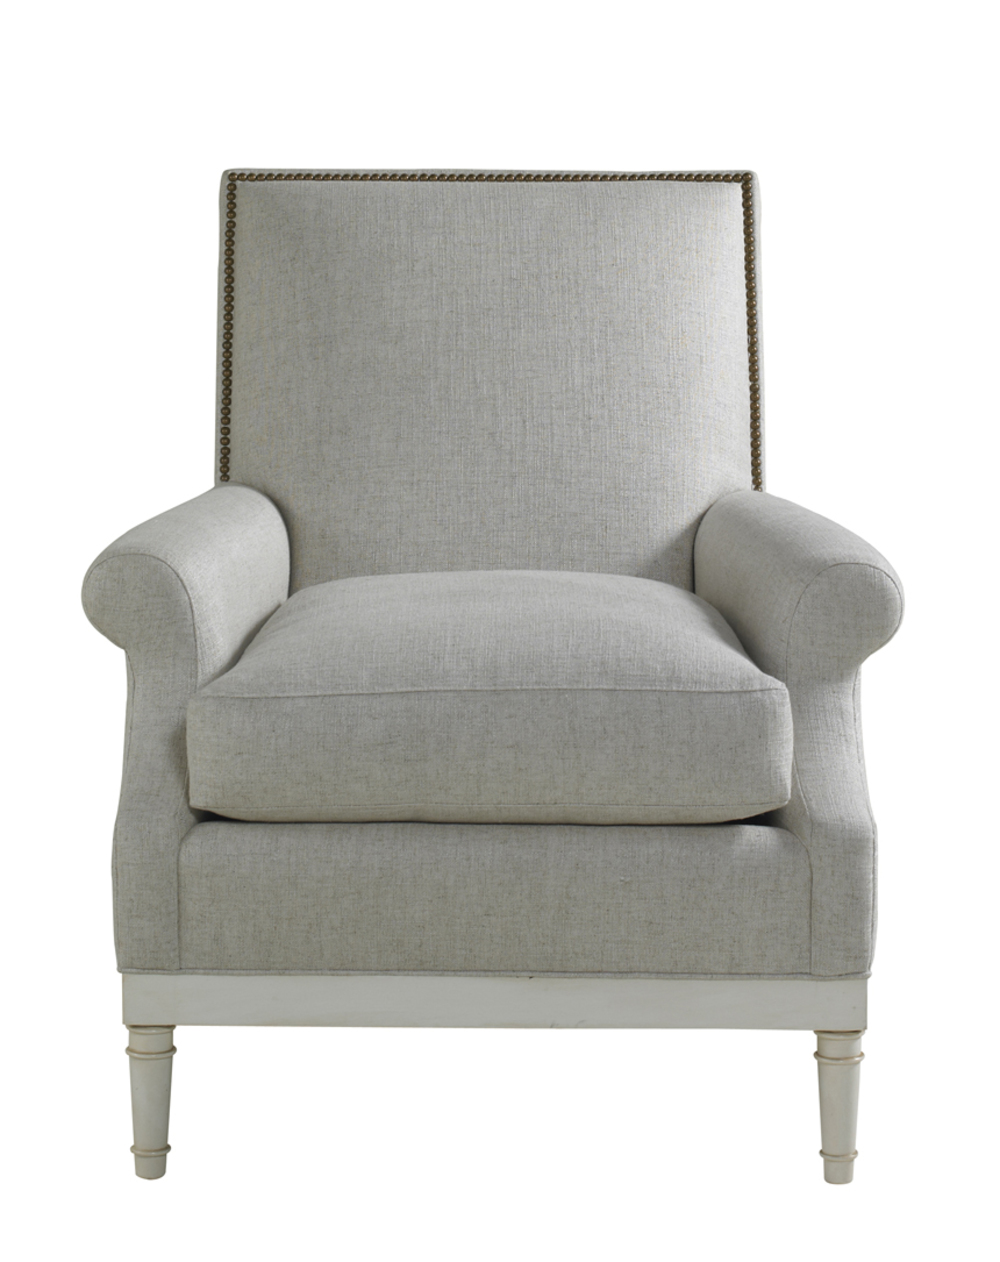 Mr. and Mrs. Howard by Sherrill Furniture - Moutier Chair